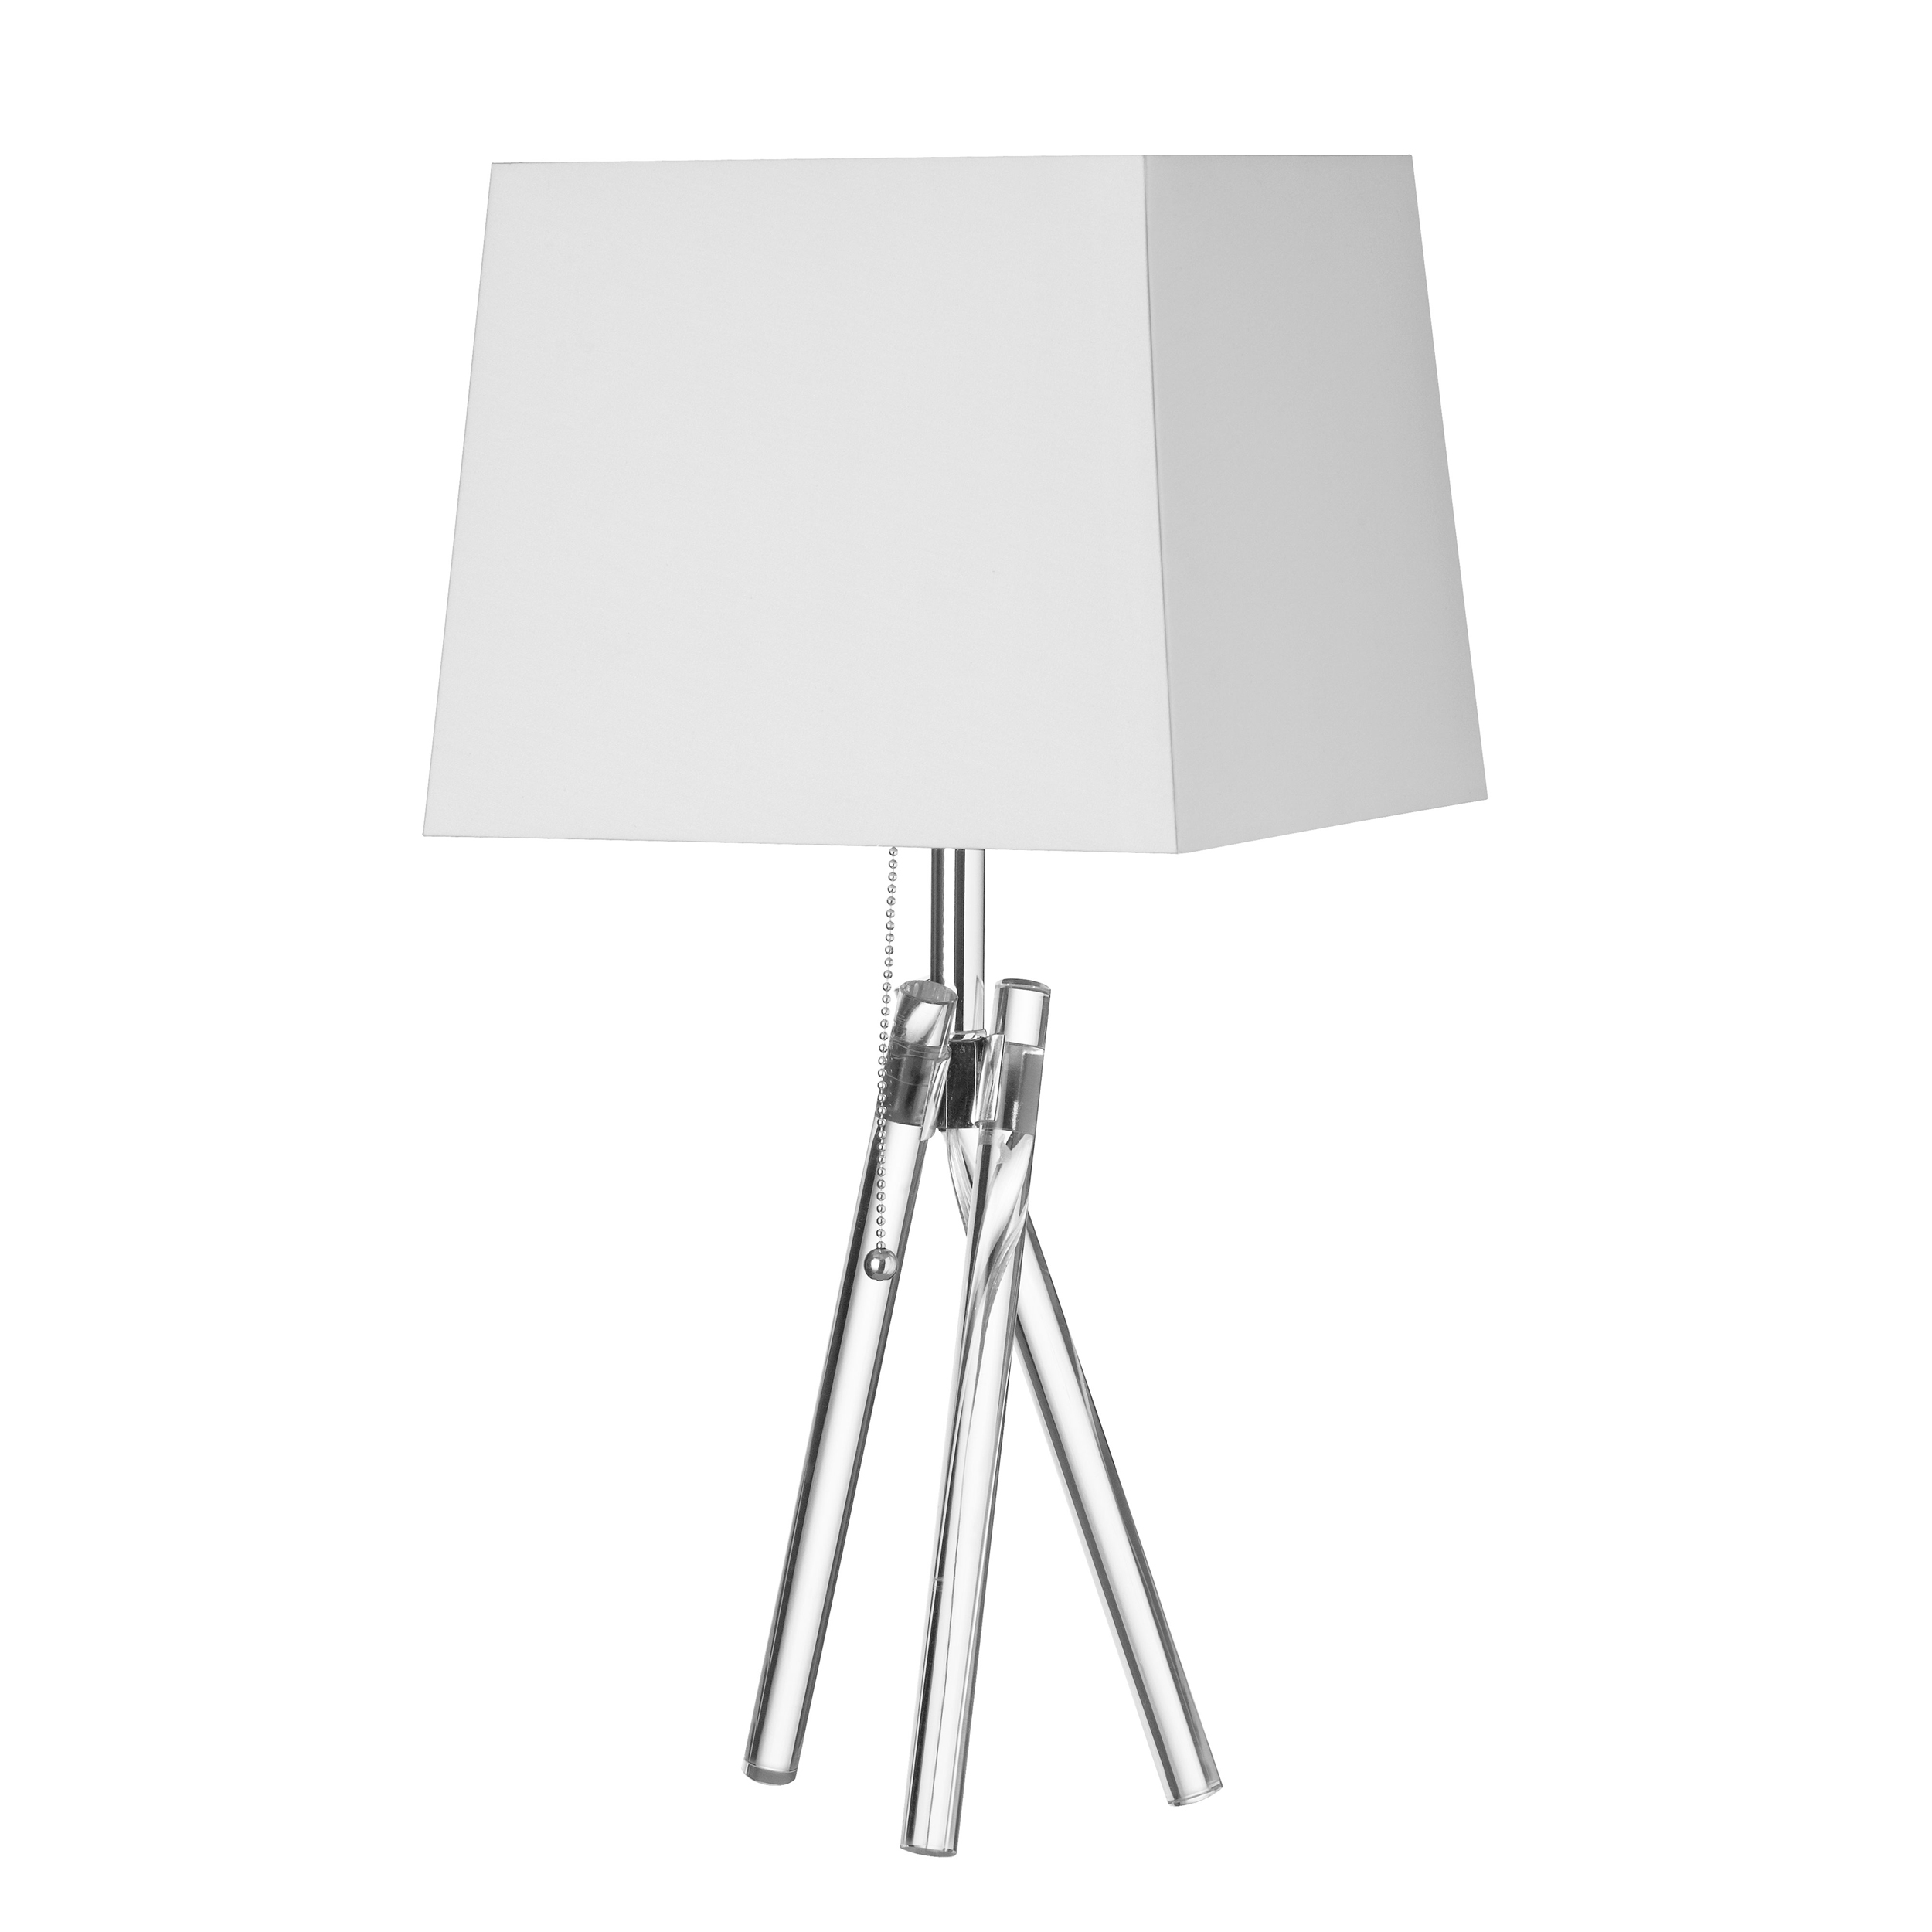 1LT Incandescent Table Lamp w/ Acrylic Legs, PC